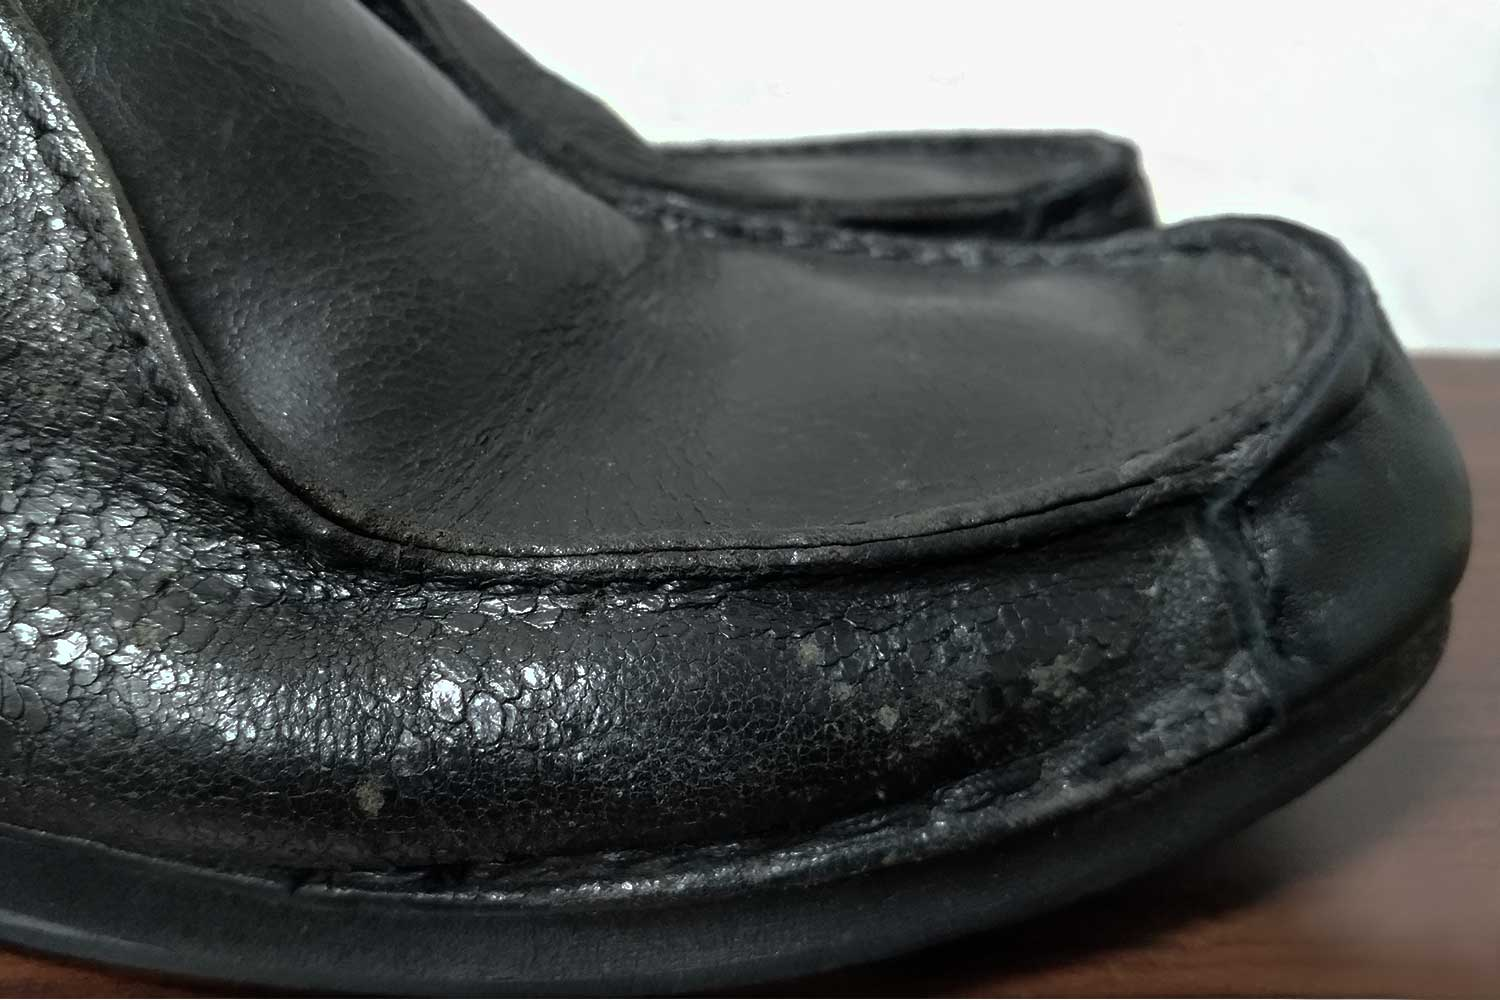 https://leather-pro.com/wp-content/uploads/2018/05/news_shoes_before_1500.jpg